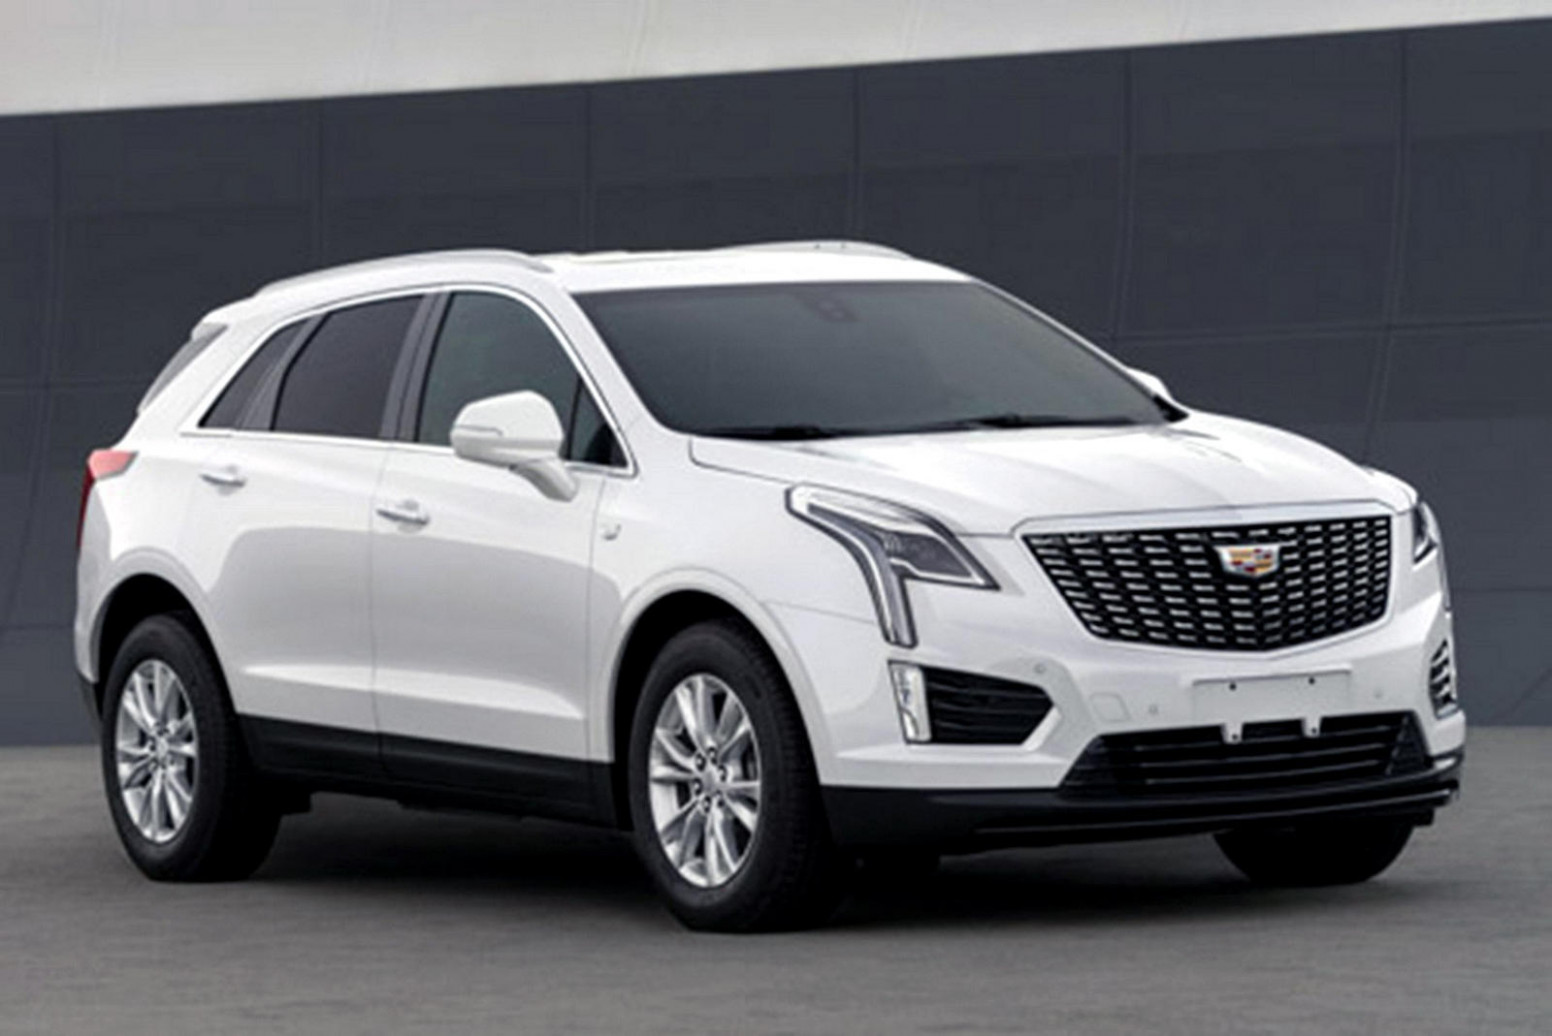 11 Cadillac XT11 Facelift Breaks Cover Early | CarBuzz